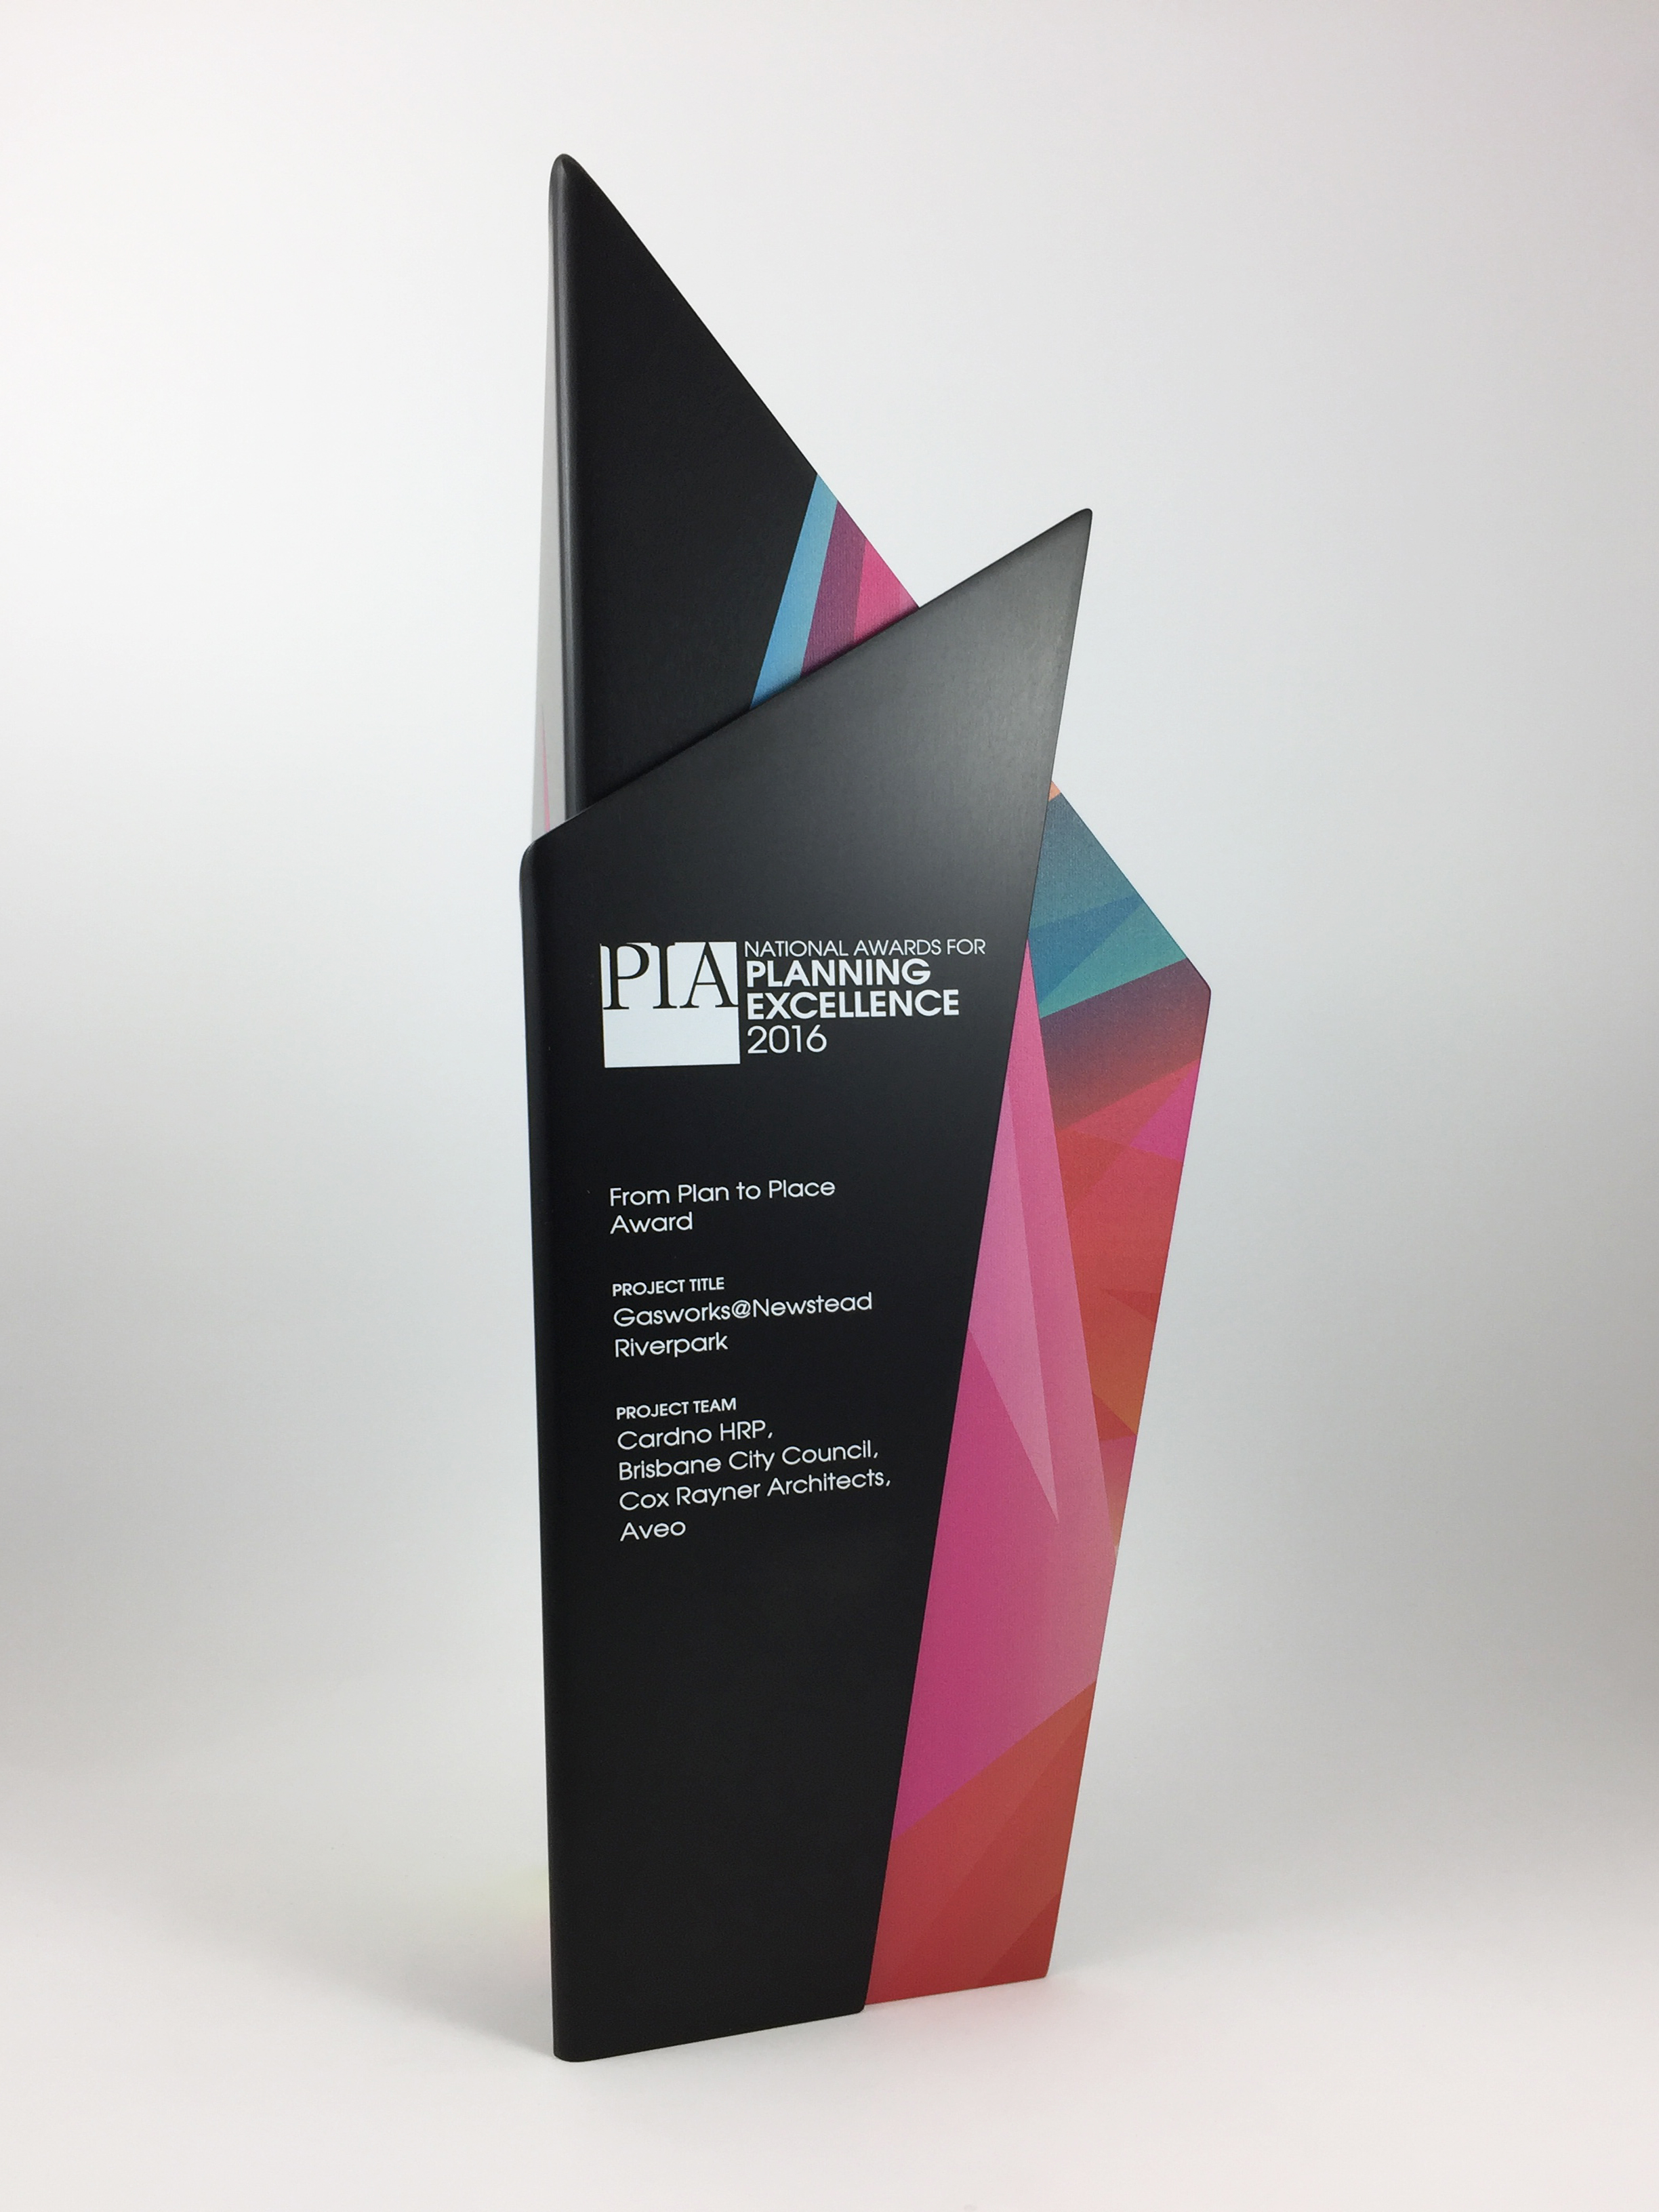 Planning-Institute-Australia-award-aluminium-trophy-02.jpg